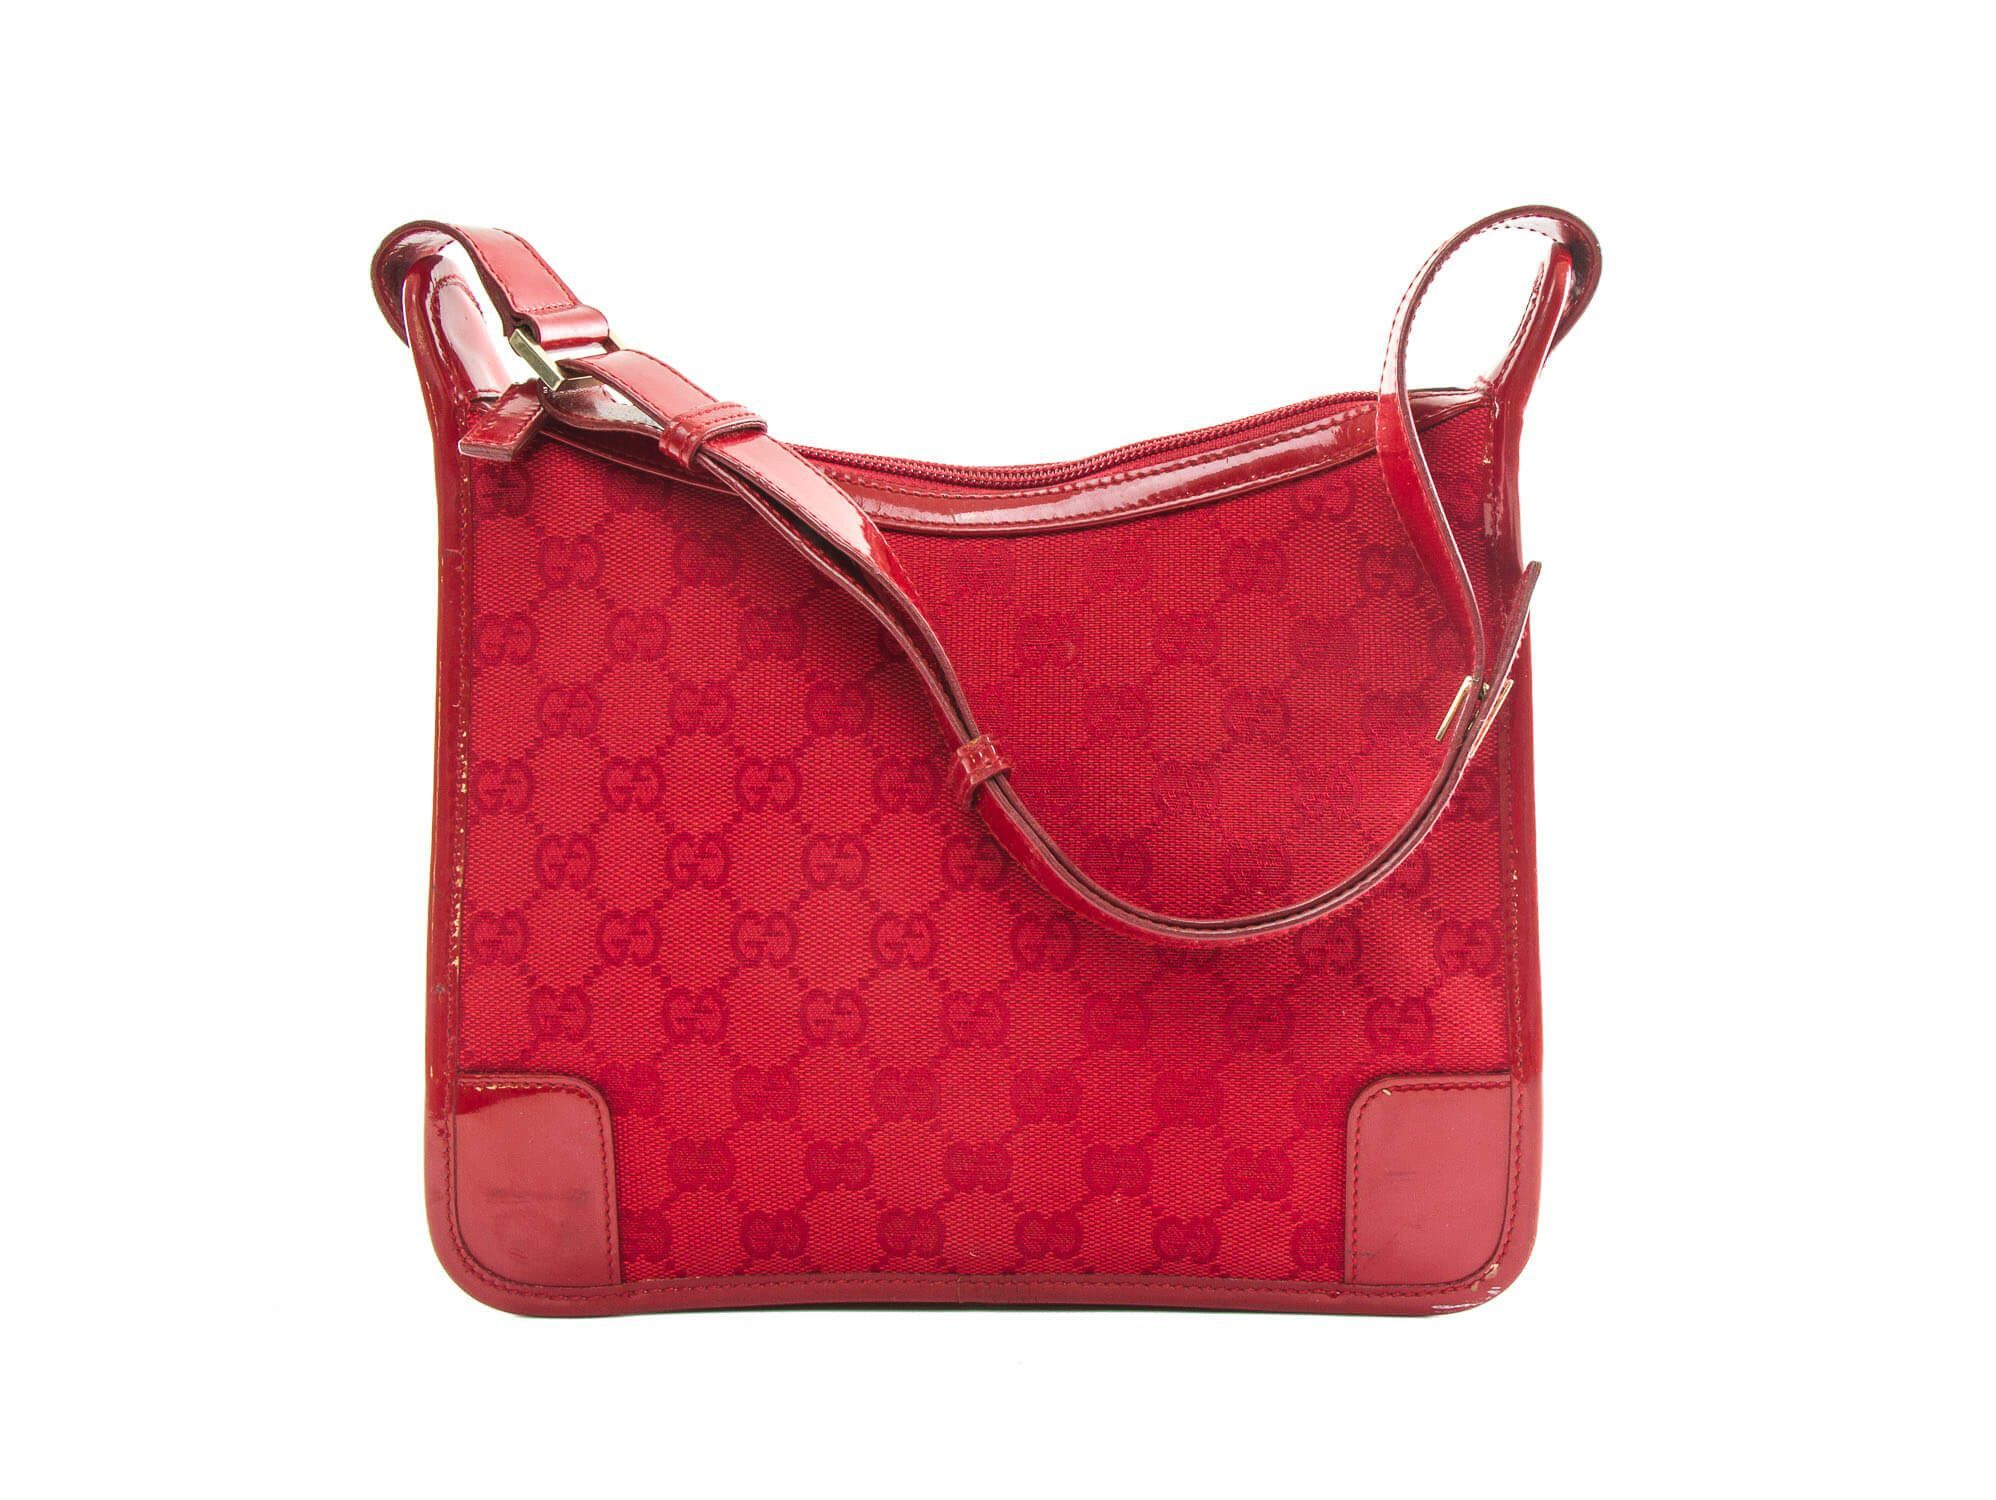 Authentic Gucci Red Shoulder Bag Signature Gg Monogram